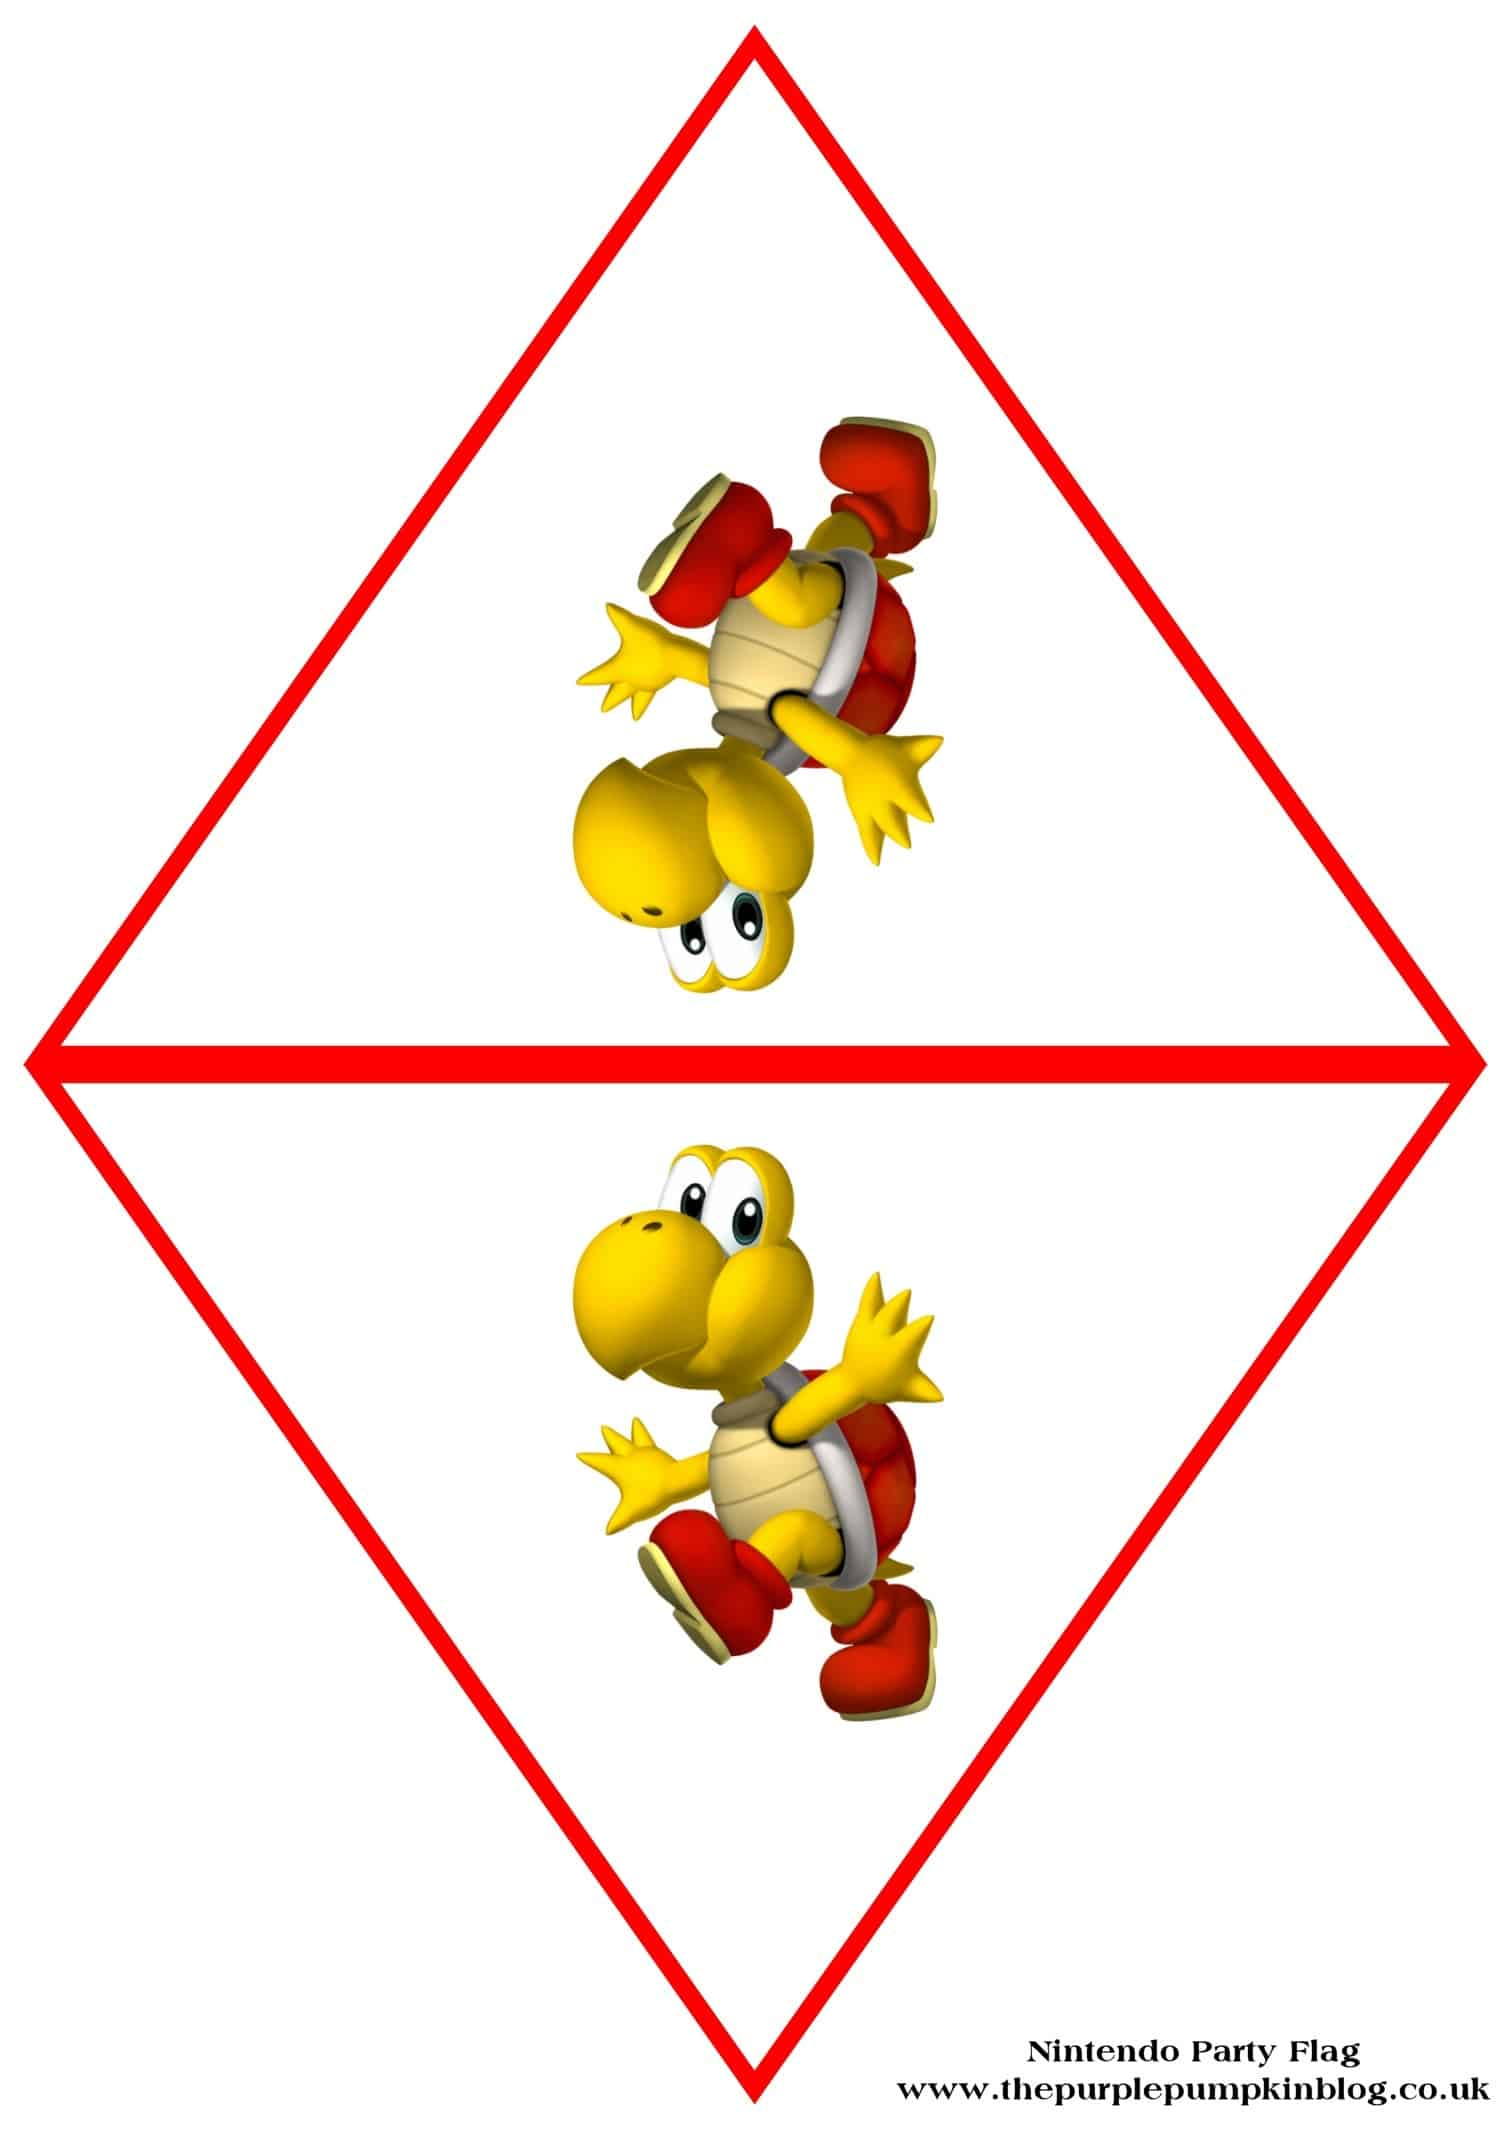 nintendo-party-flag-koopa-troopa